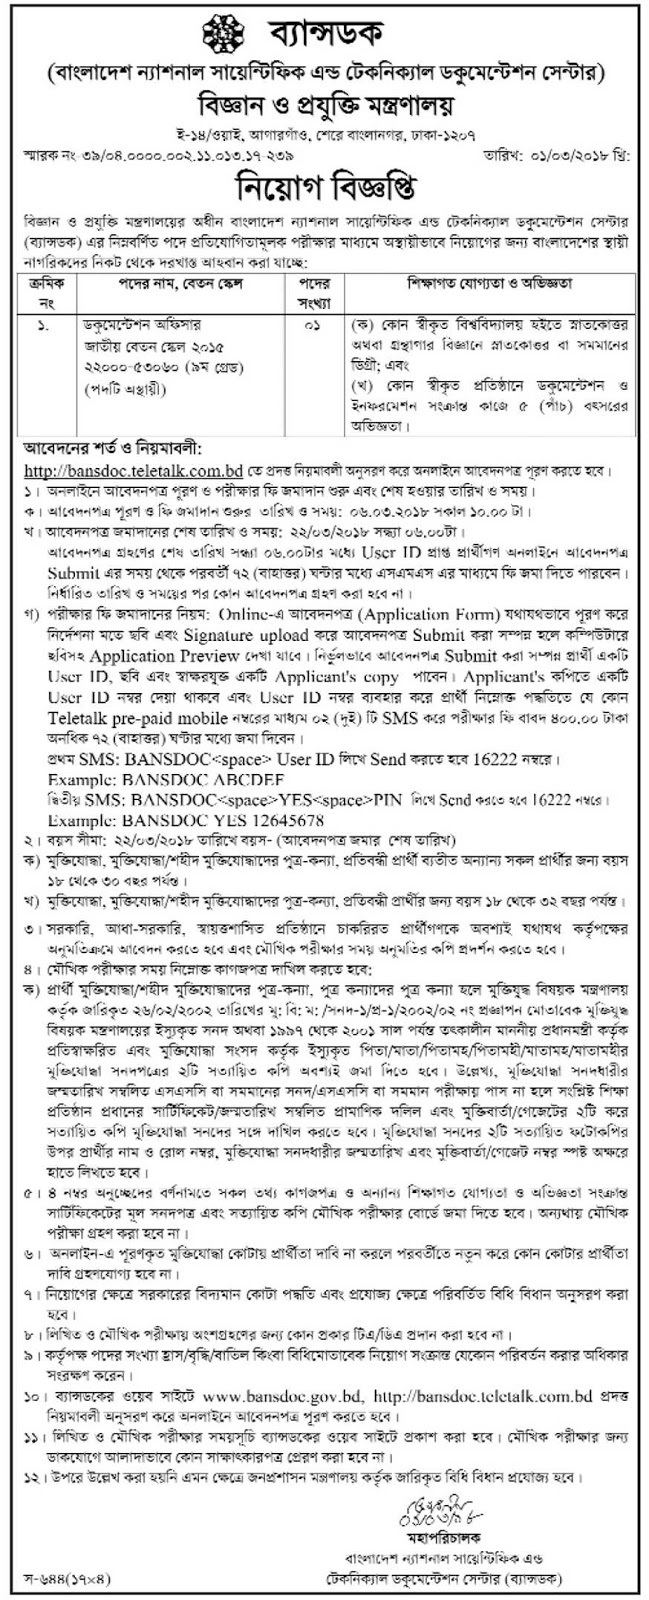 Bangladesh National Scientific and Technical Documentation Centre (BANSDOC) Recruitment Circular 2018